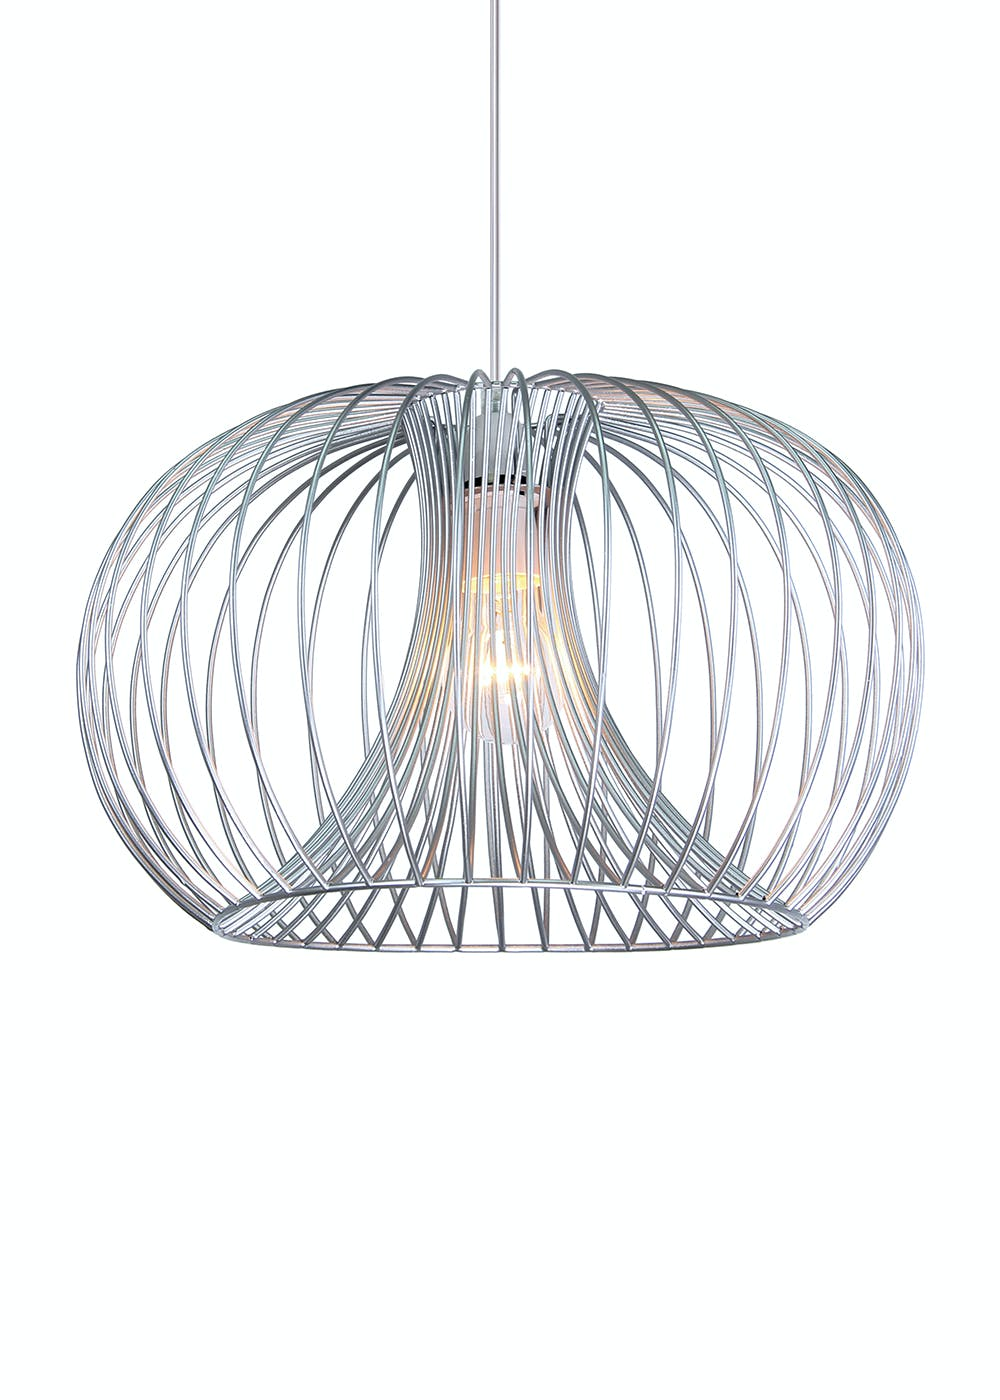 Alberta easy fit lamp shade h25cm x w25cm silver matalan alberta easy fit lamp shade h25cm x w25cm aloadofball Image collections